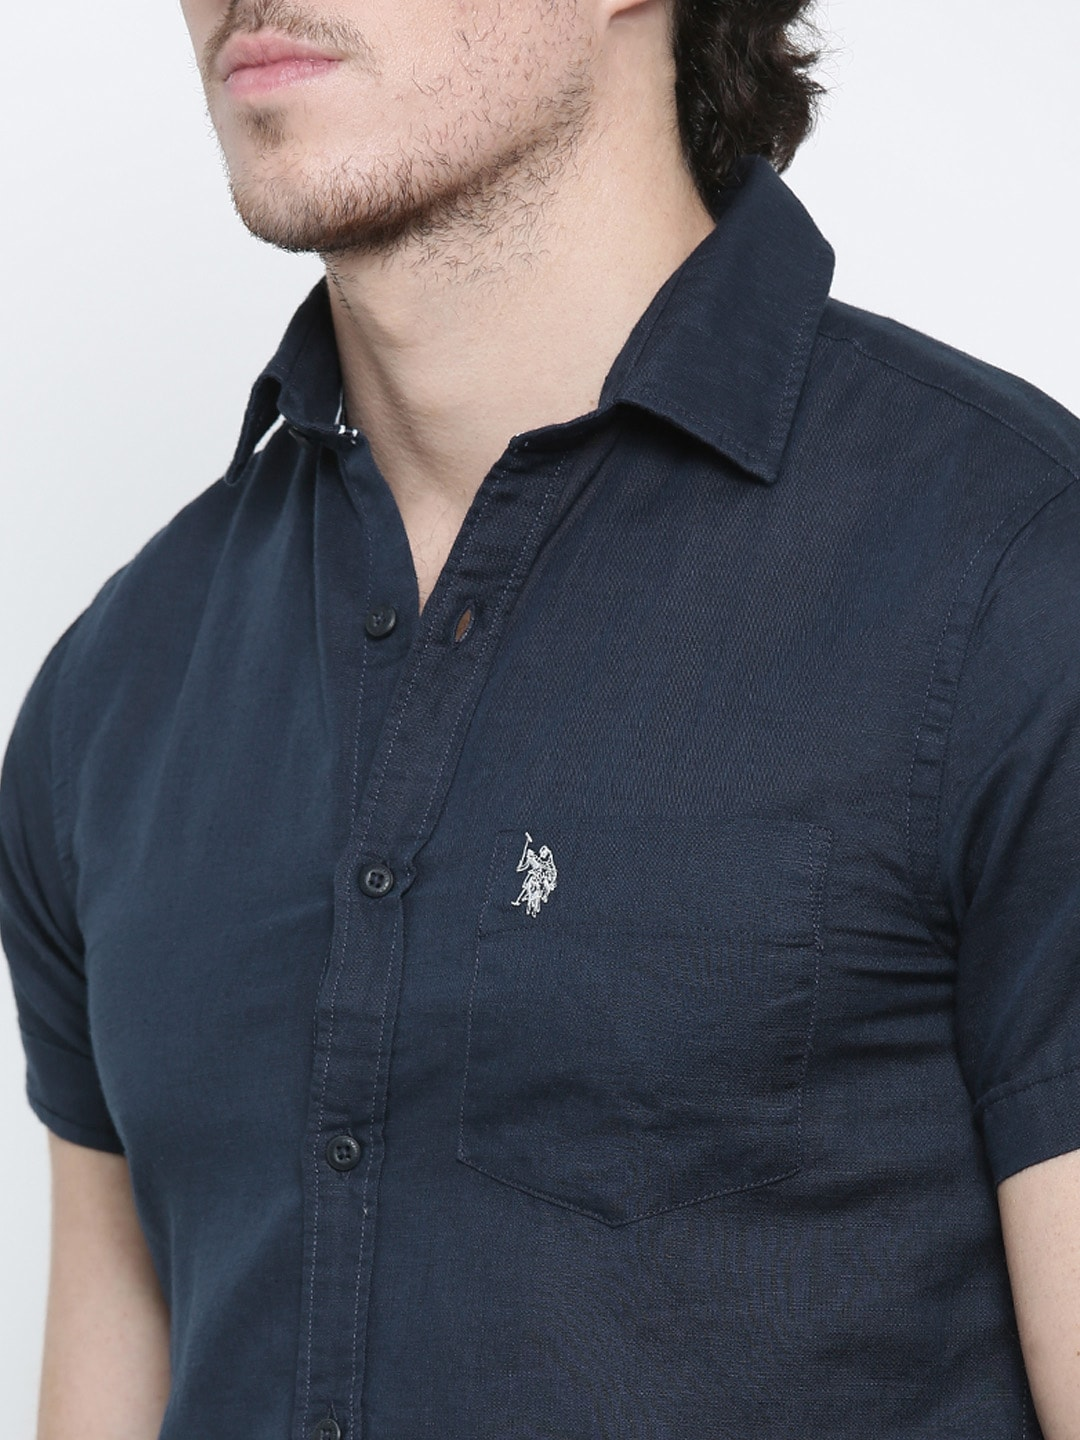 ca00a9f93 Us Polo Linen Shirts Online India